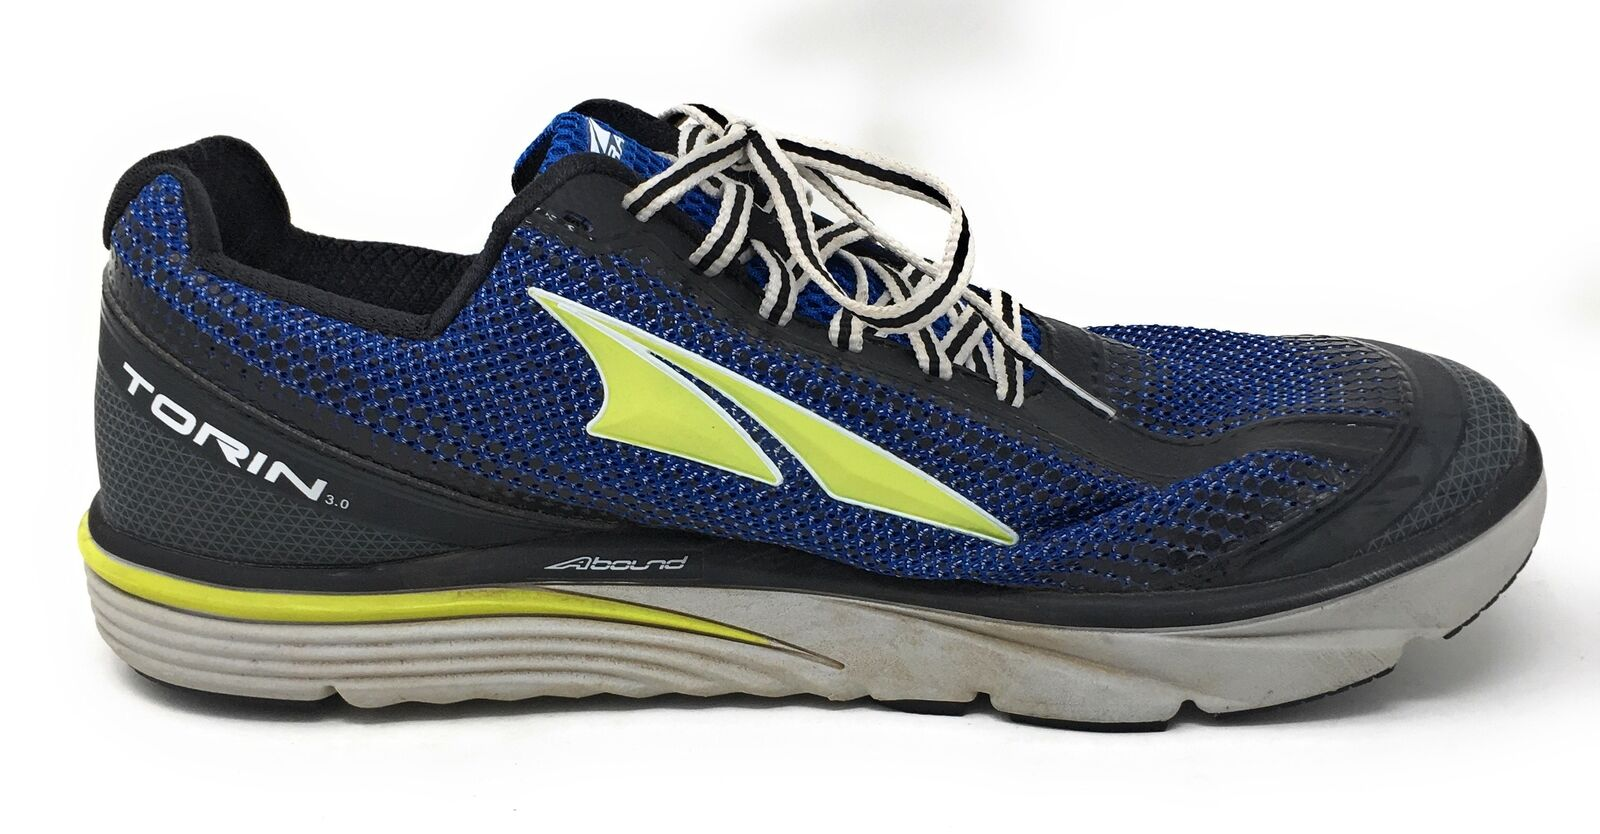 Altra Men's Torin 3.0 Running shoes, blueee Lime - 10.5 D(M) US - USED